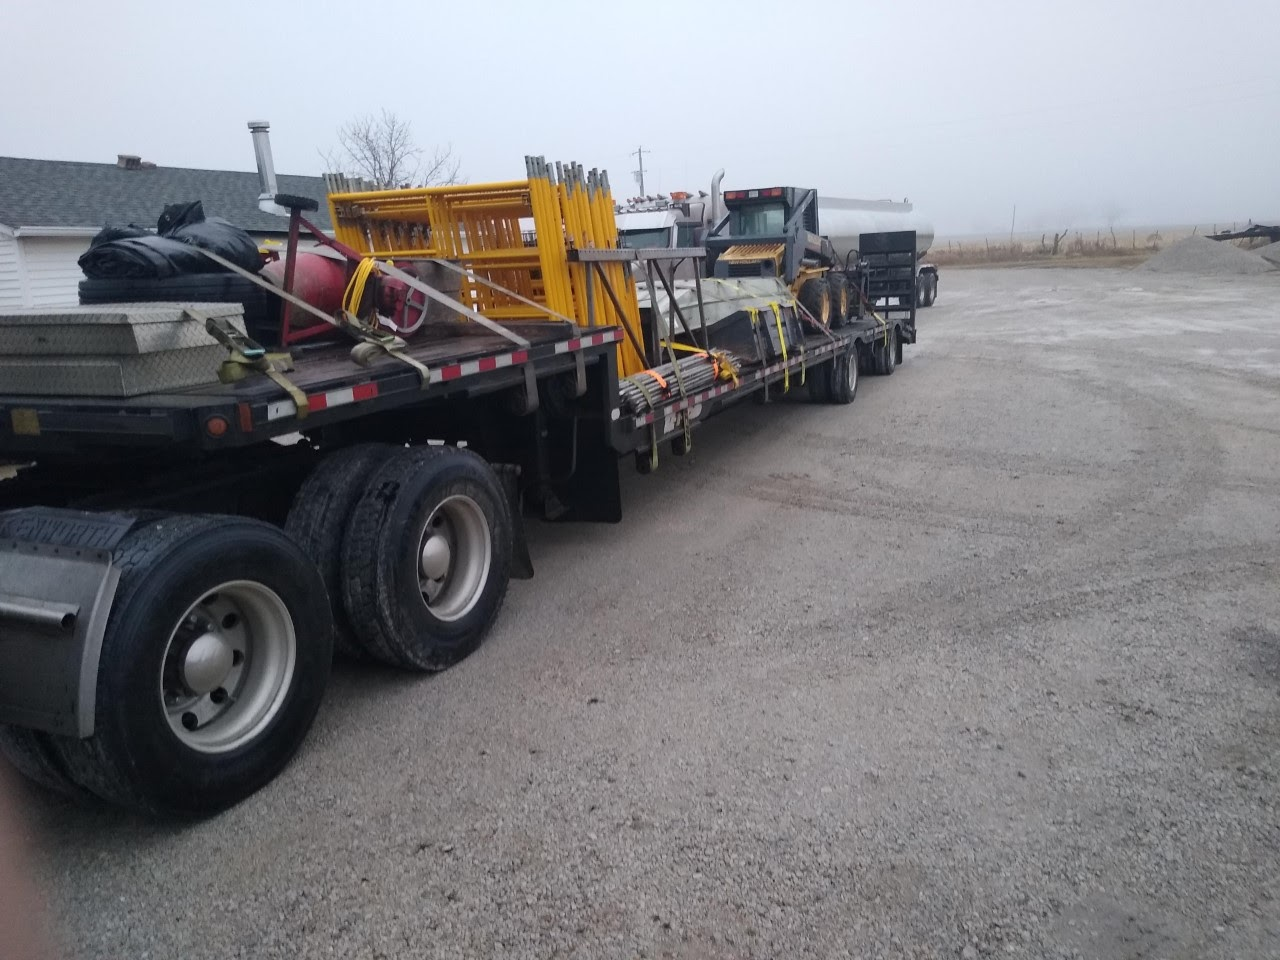 Skid steer transport in Louisiana